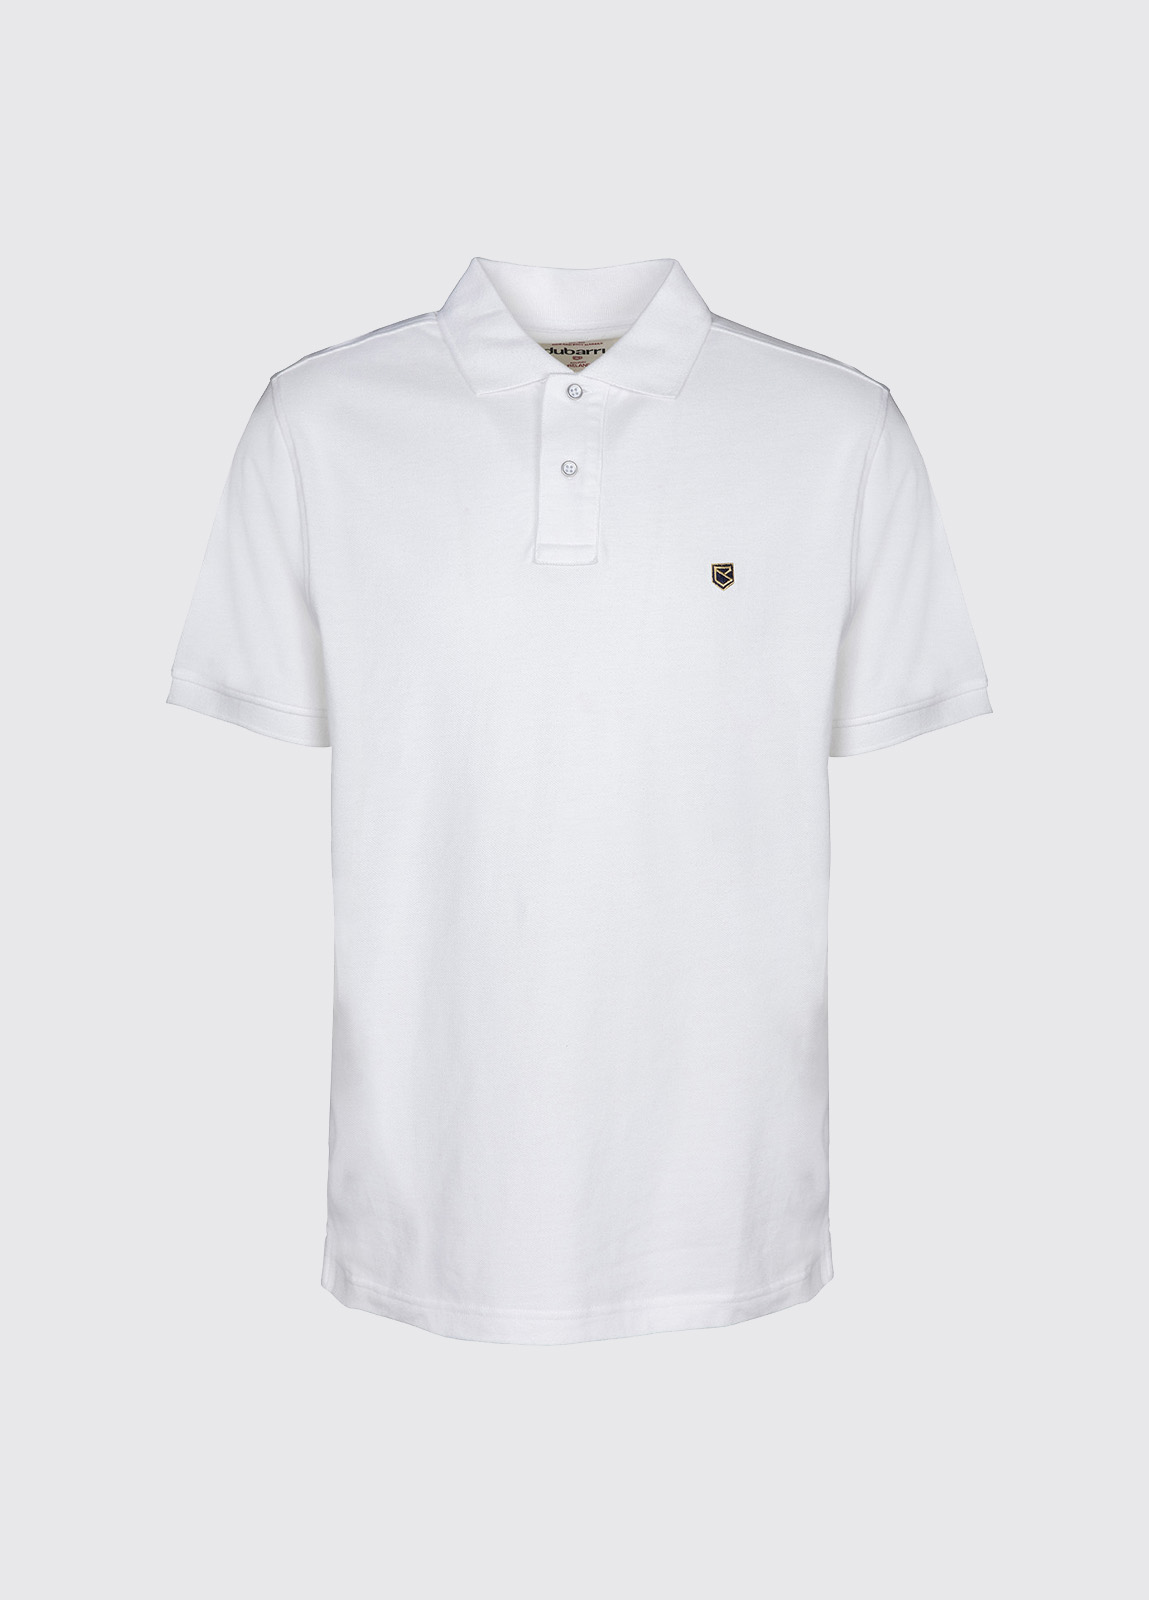 Banbridge Polo shirt - White